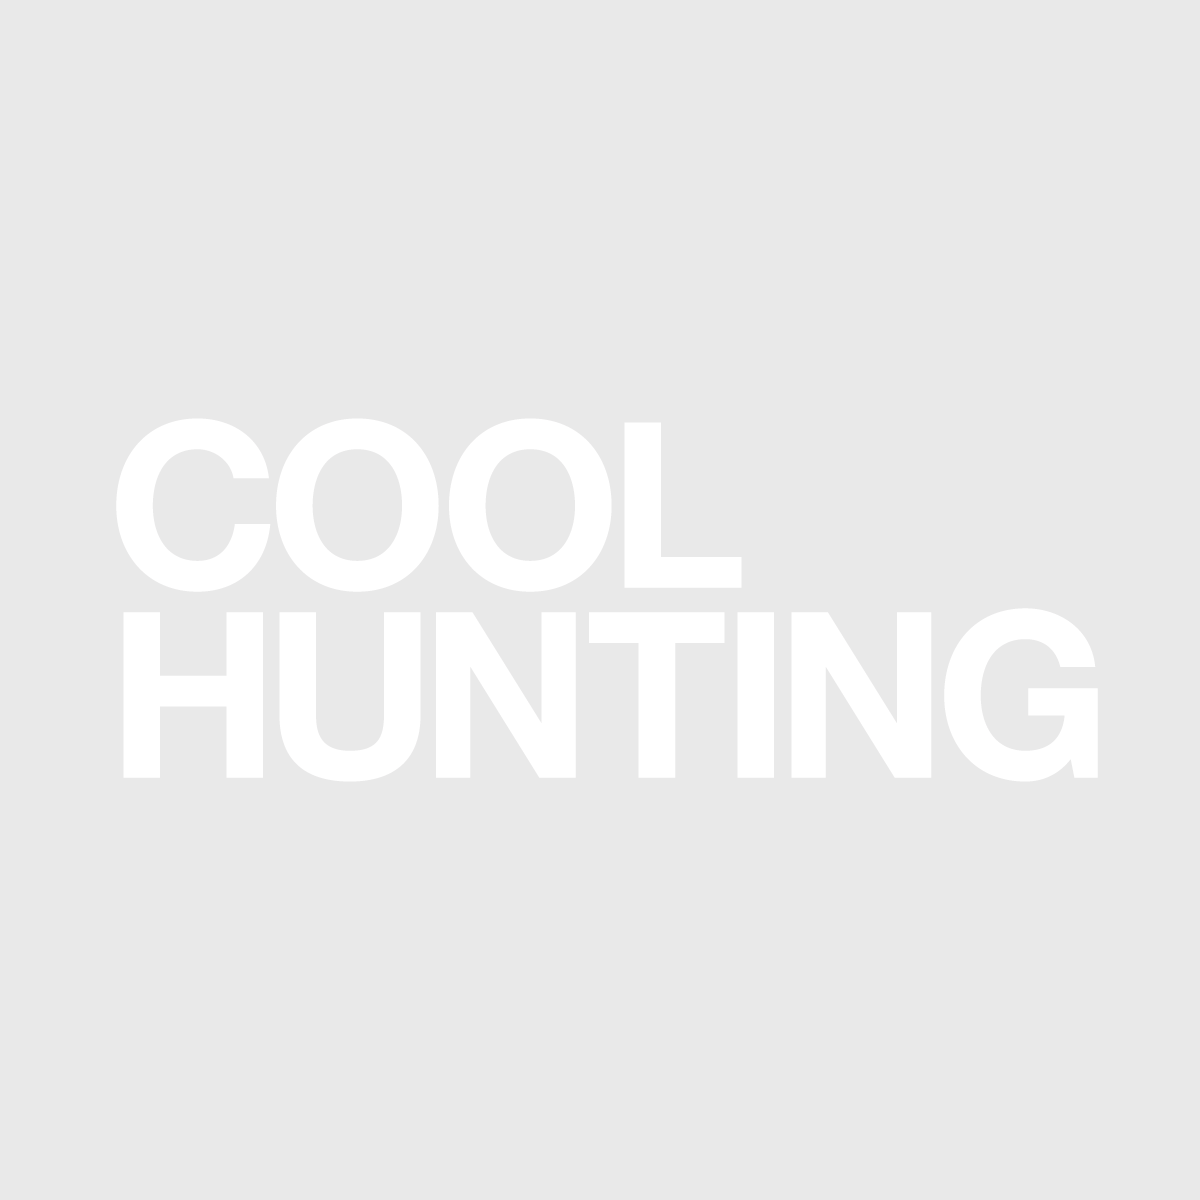 Click to view the feature on coolhunting.com